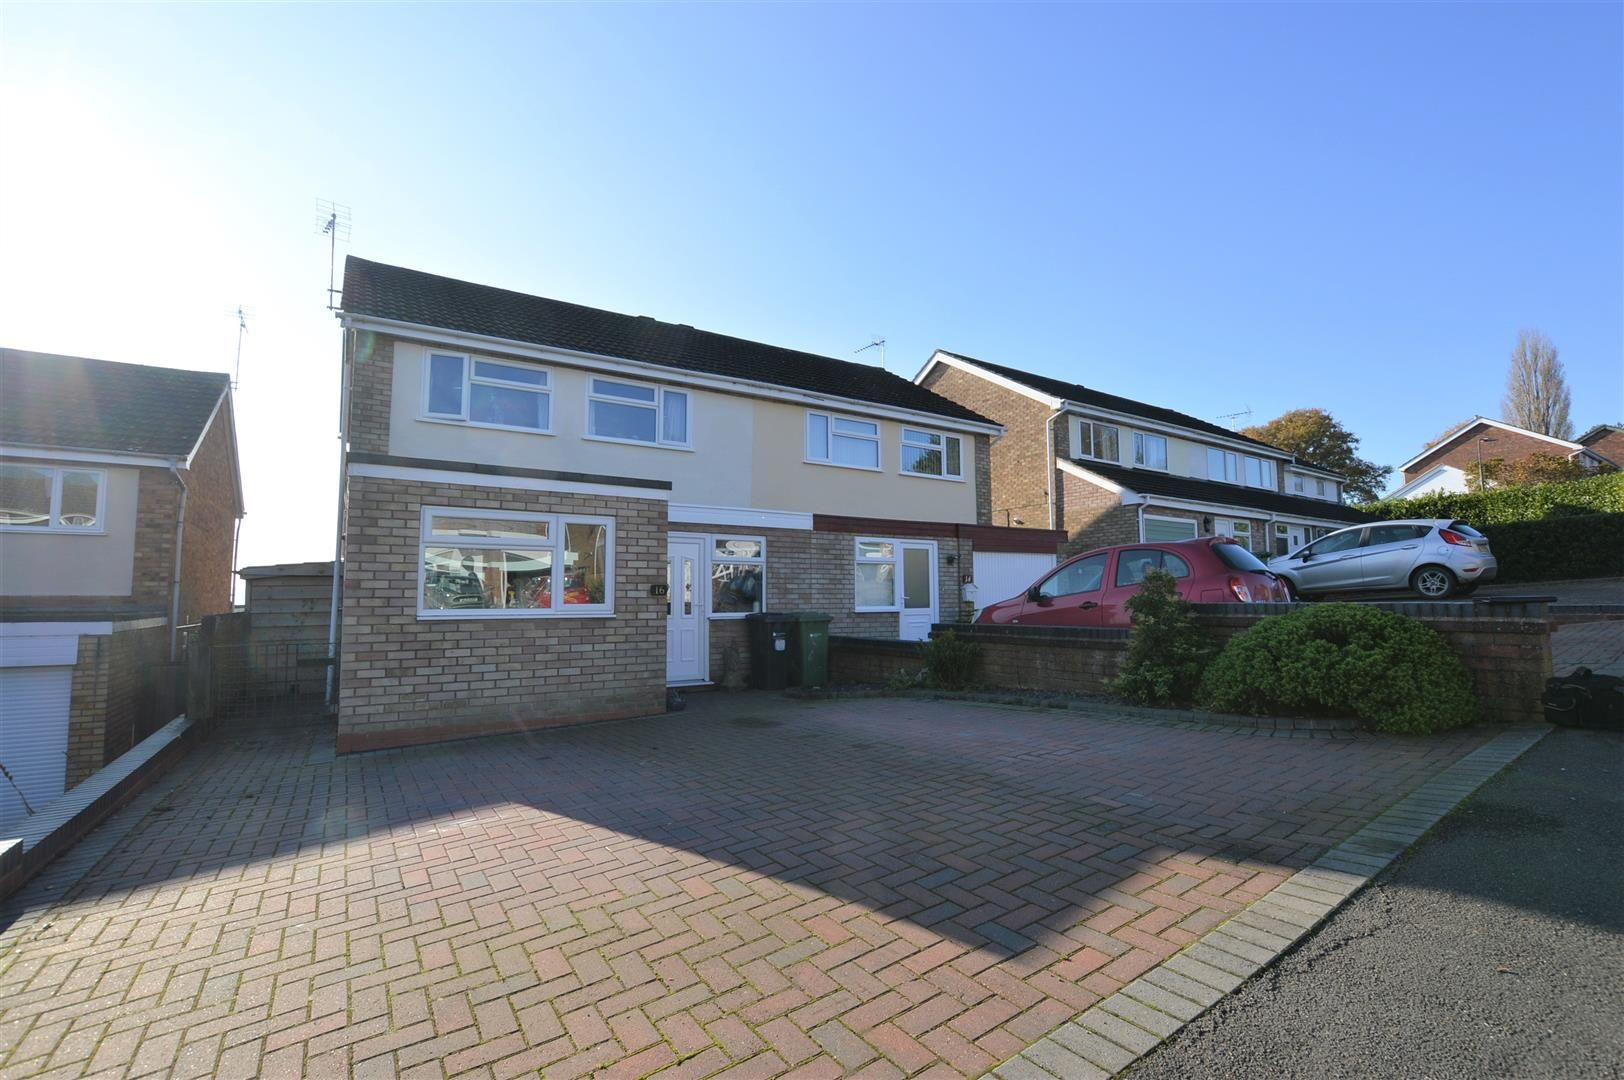 4 bed semi-detached for sale in Bromyard, HR7